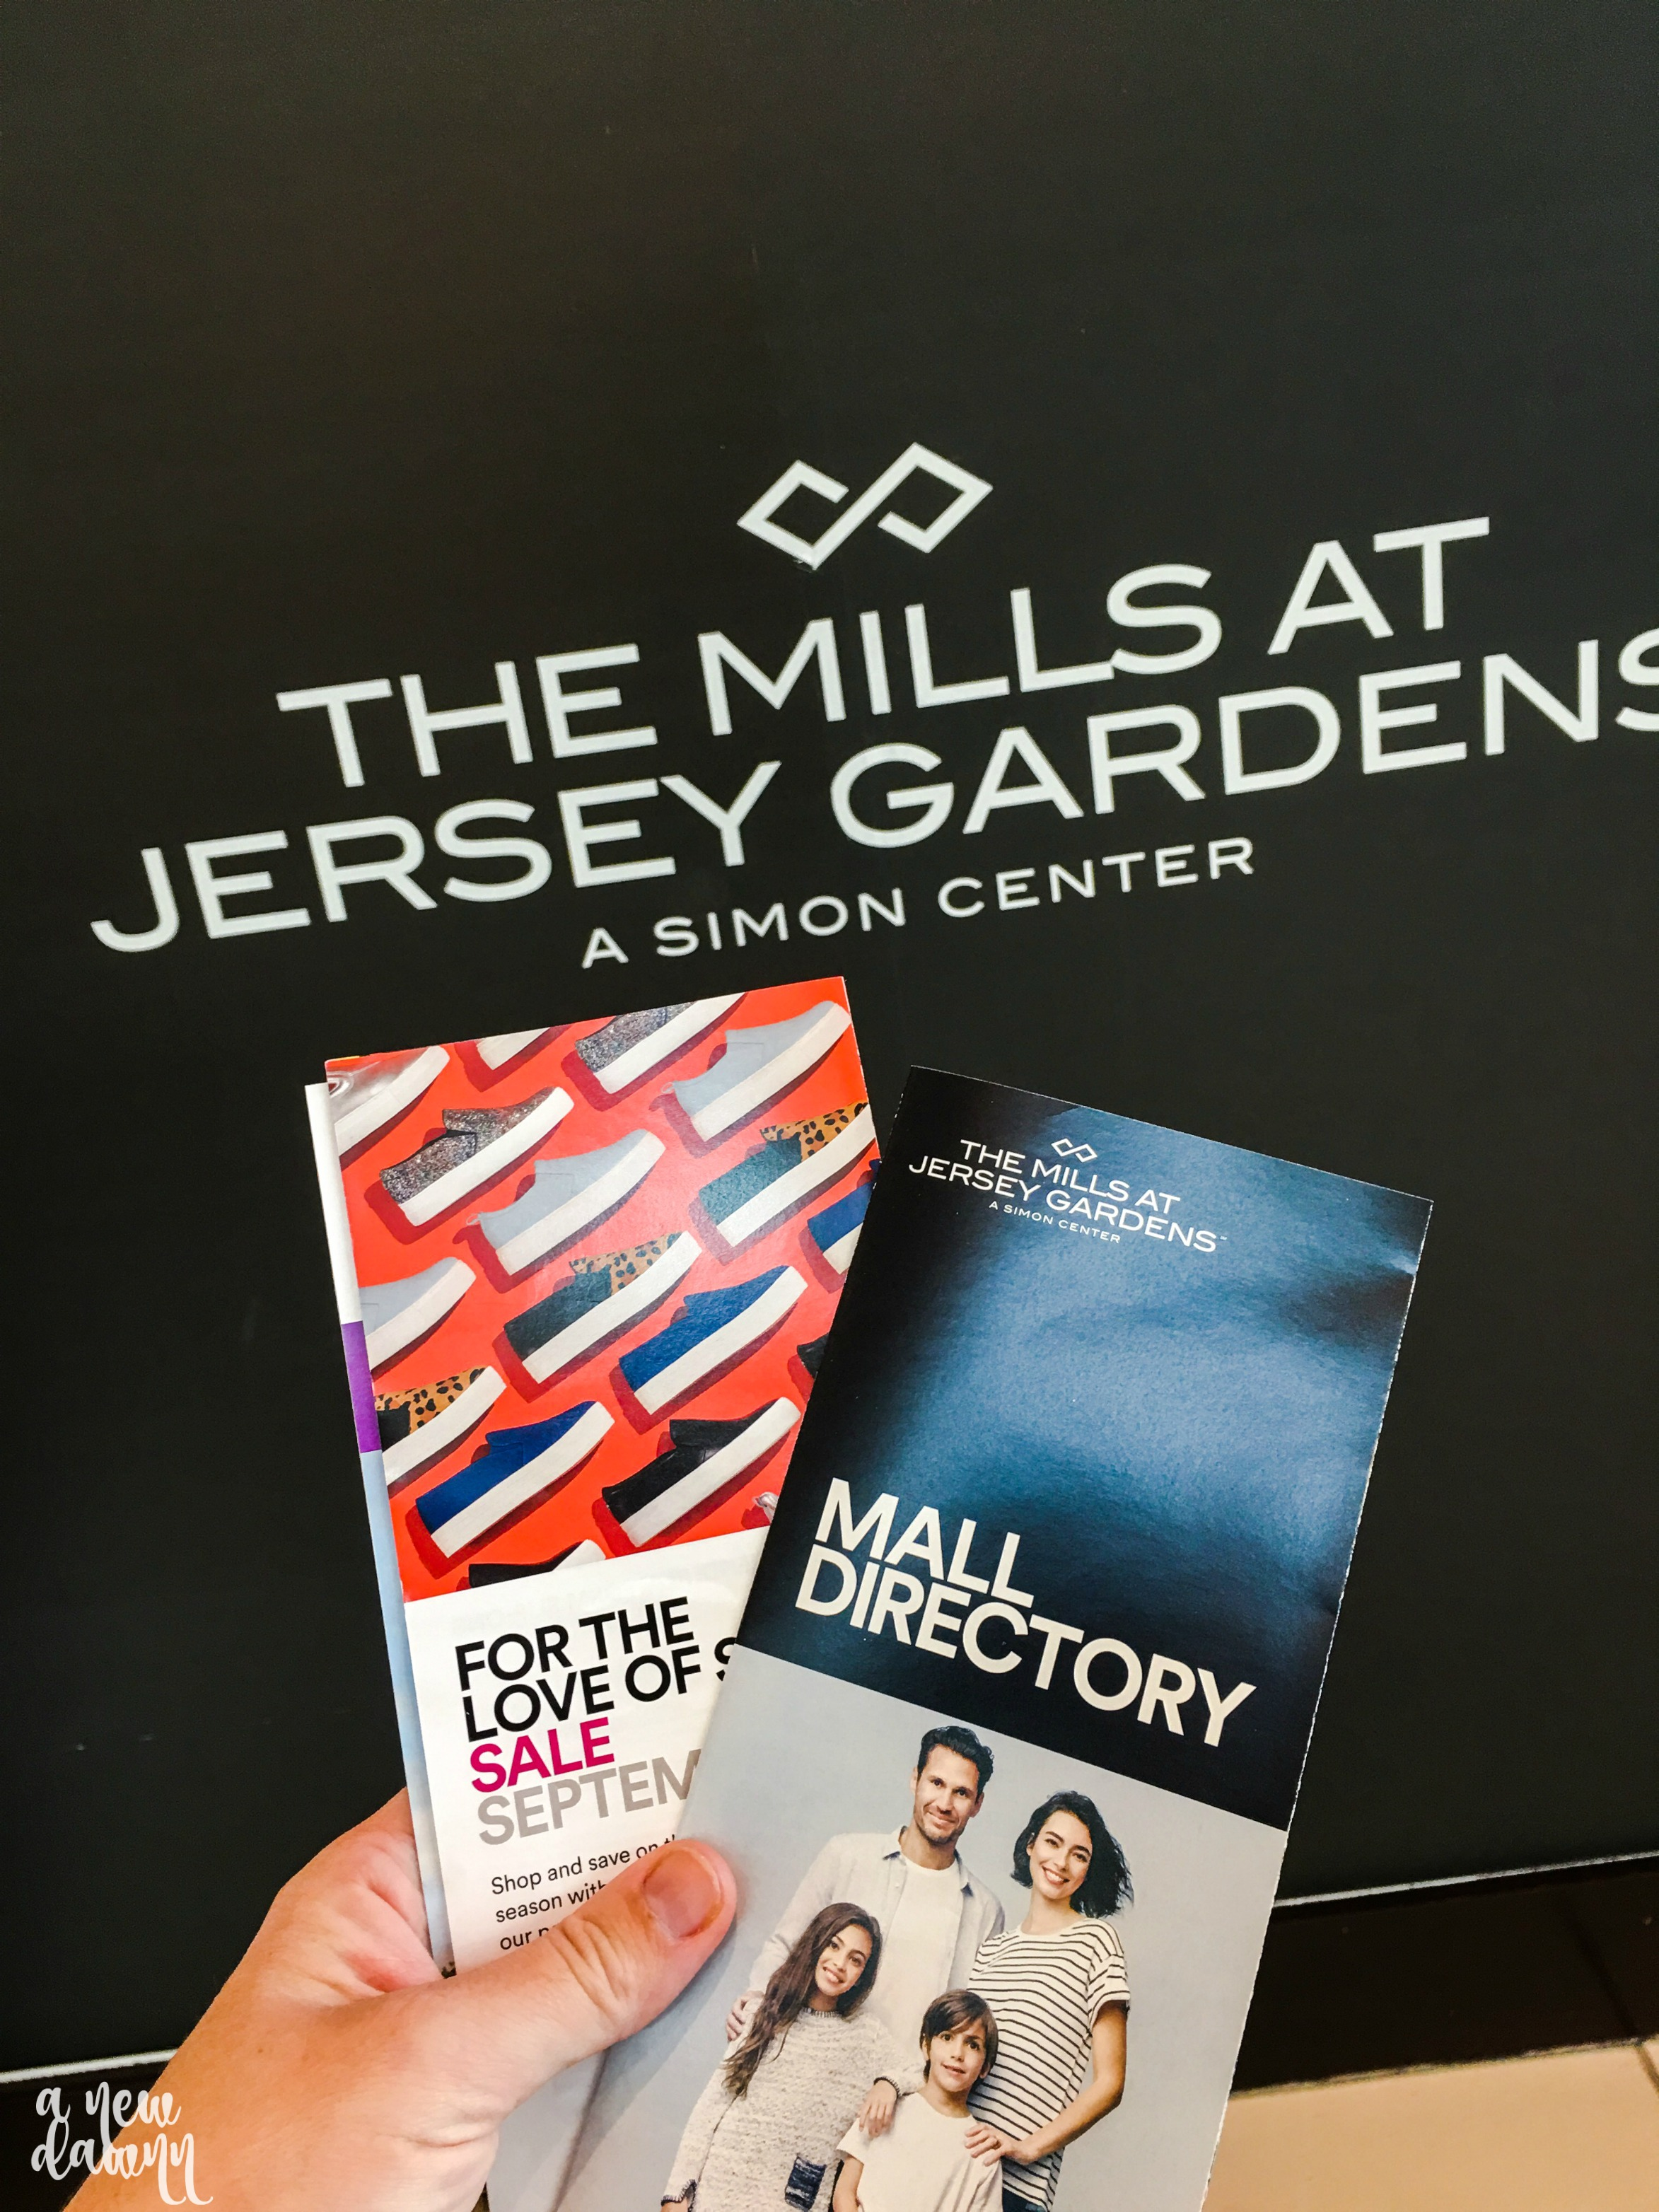 The Mills at Jersey Gardens